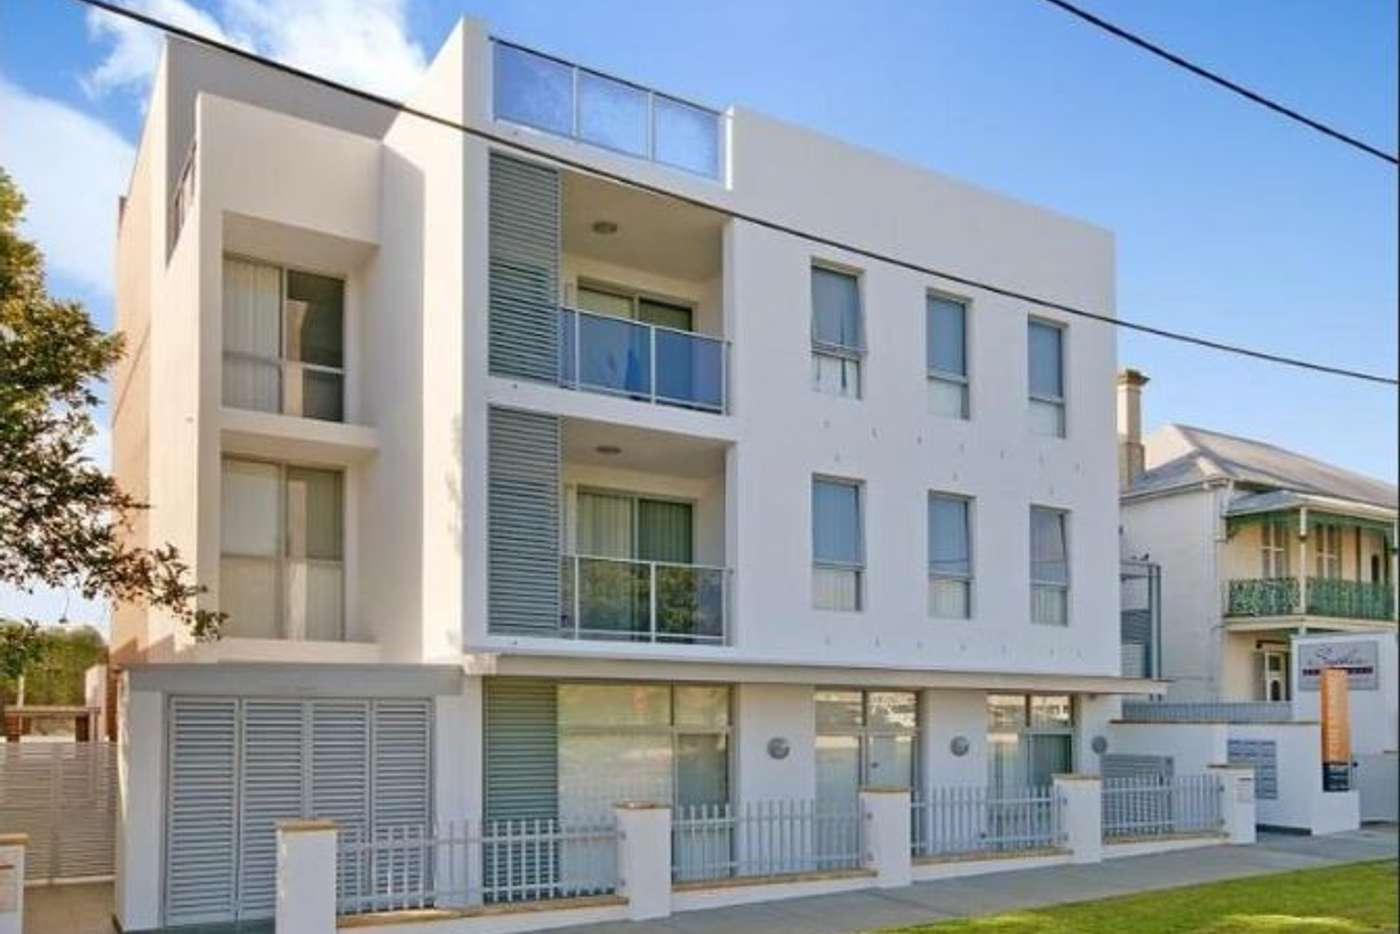 Main view of Homely apartment listing, 4/51-53 High Street, Parramatta NSW 2150